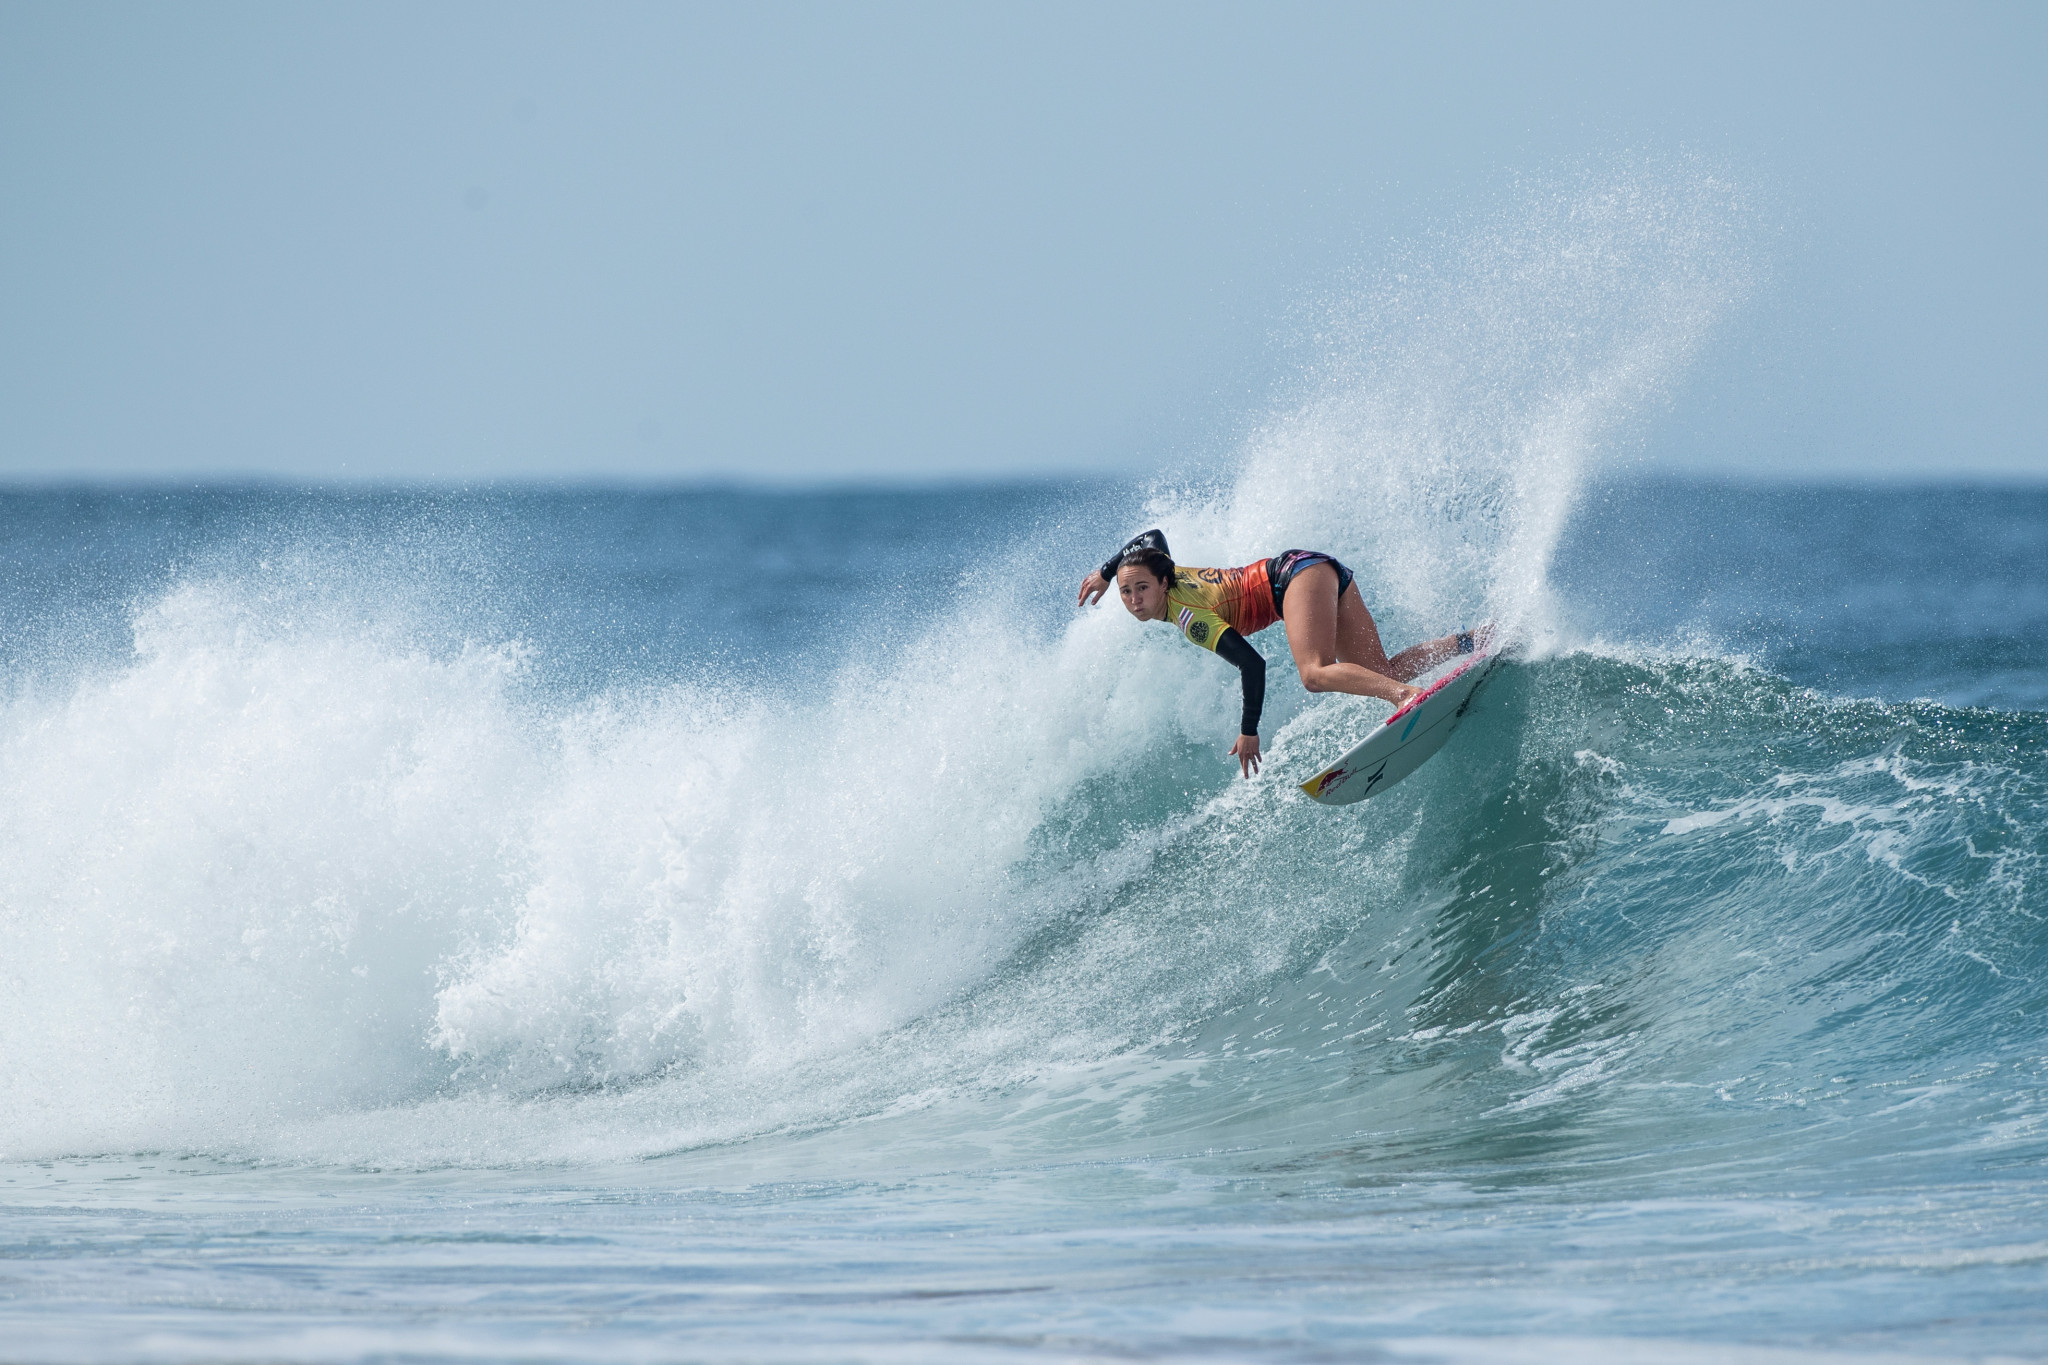 Moore advances on opening day of World Surf League event in Rottnest Island